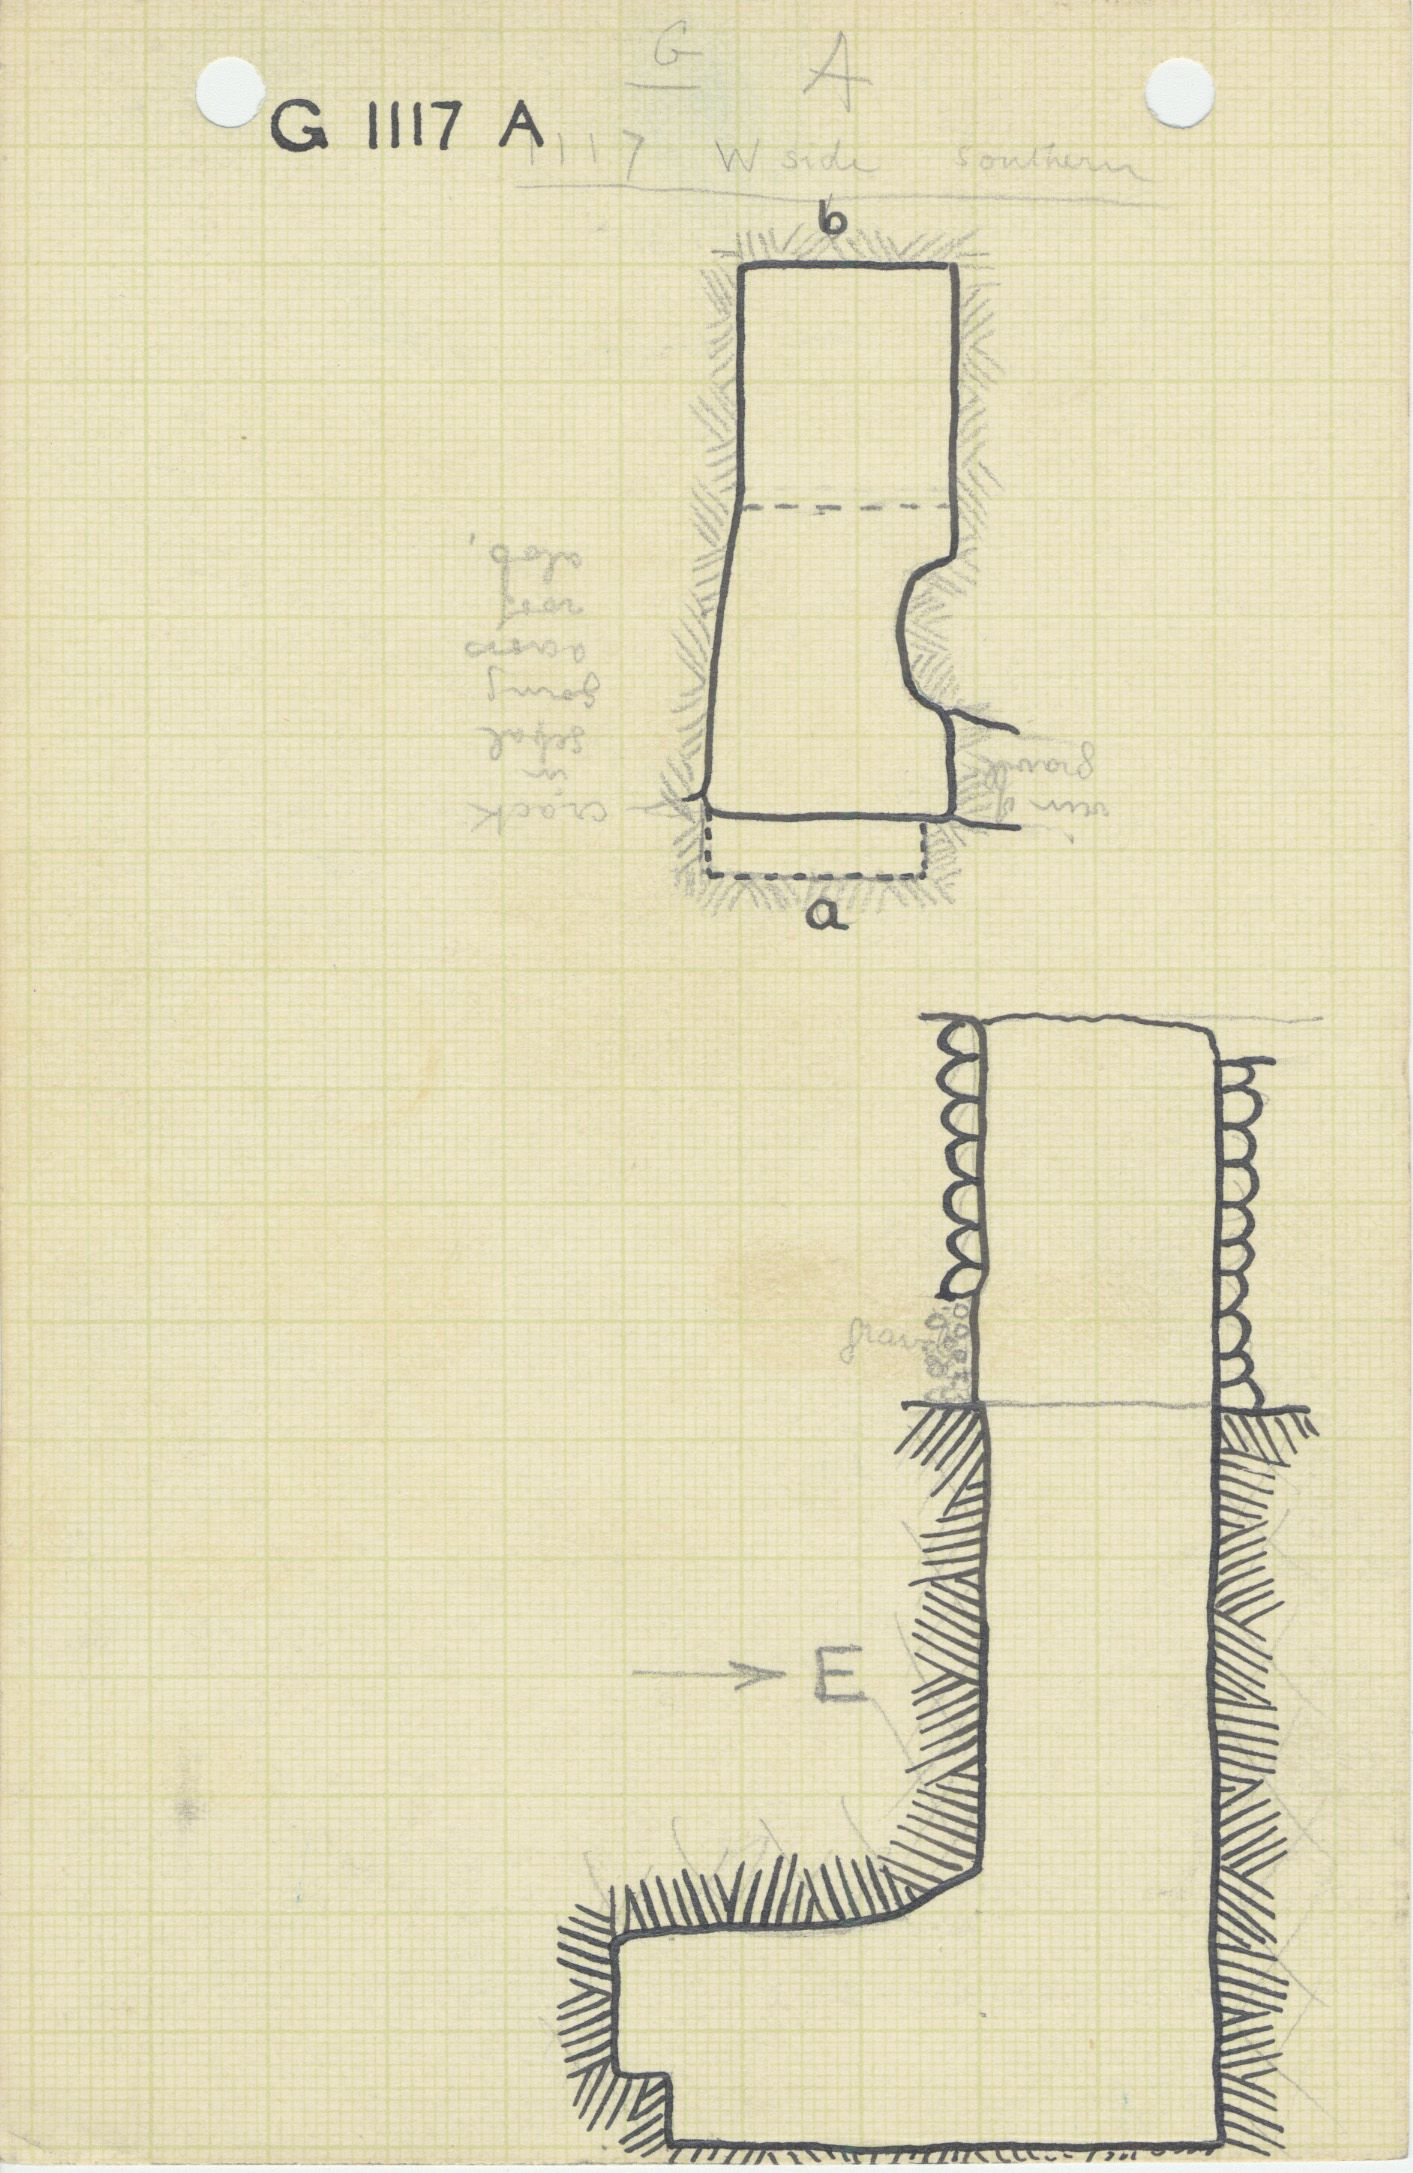 Maps and plans: G 1117, Shaft A